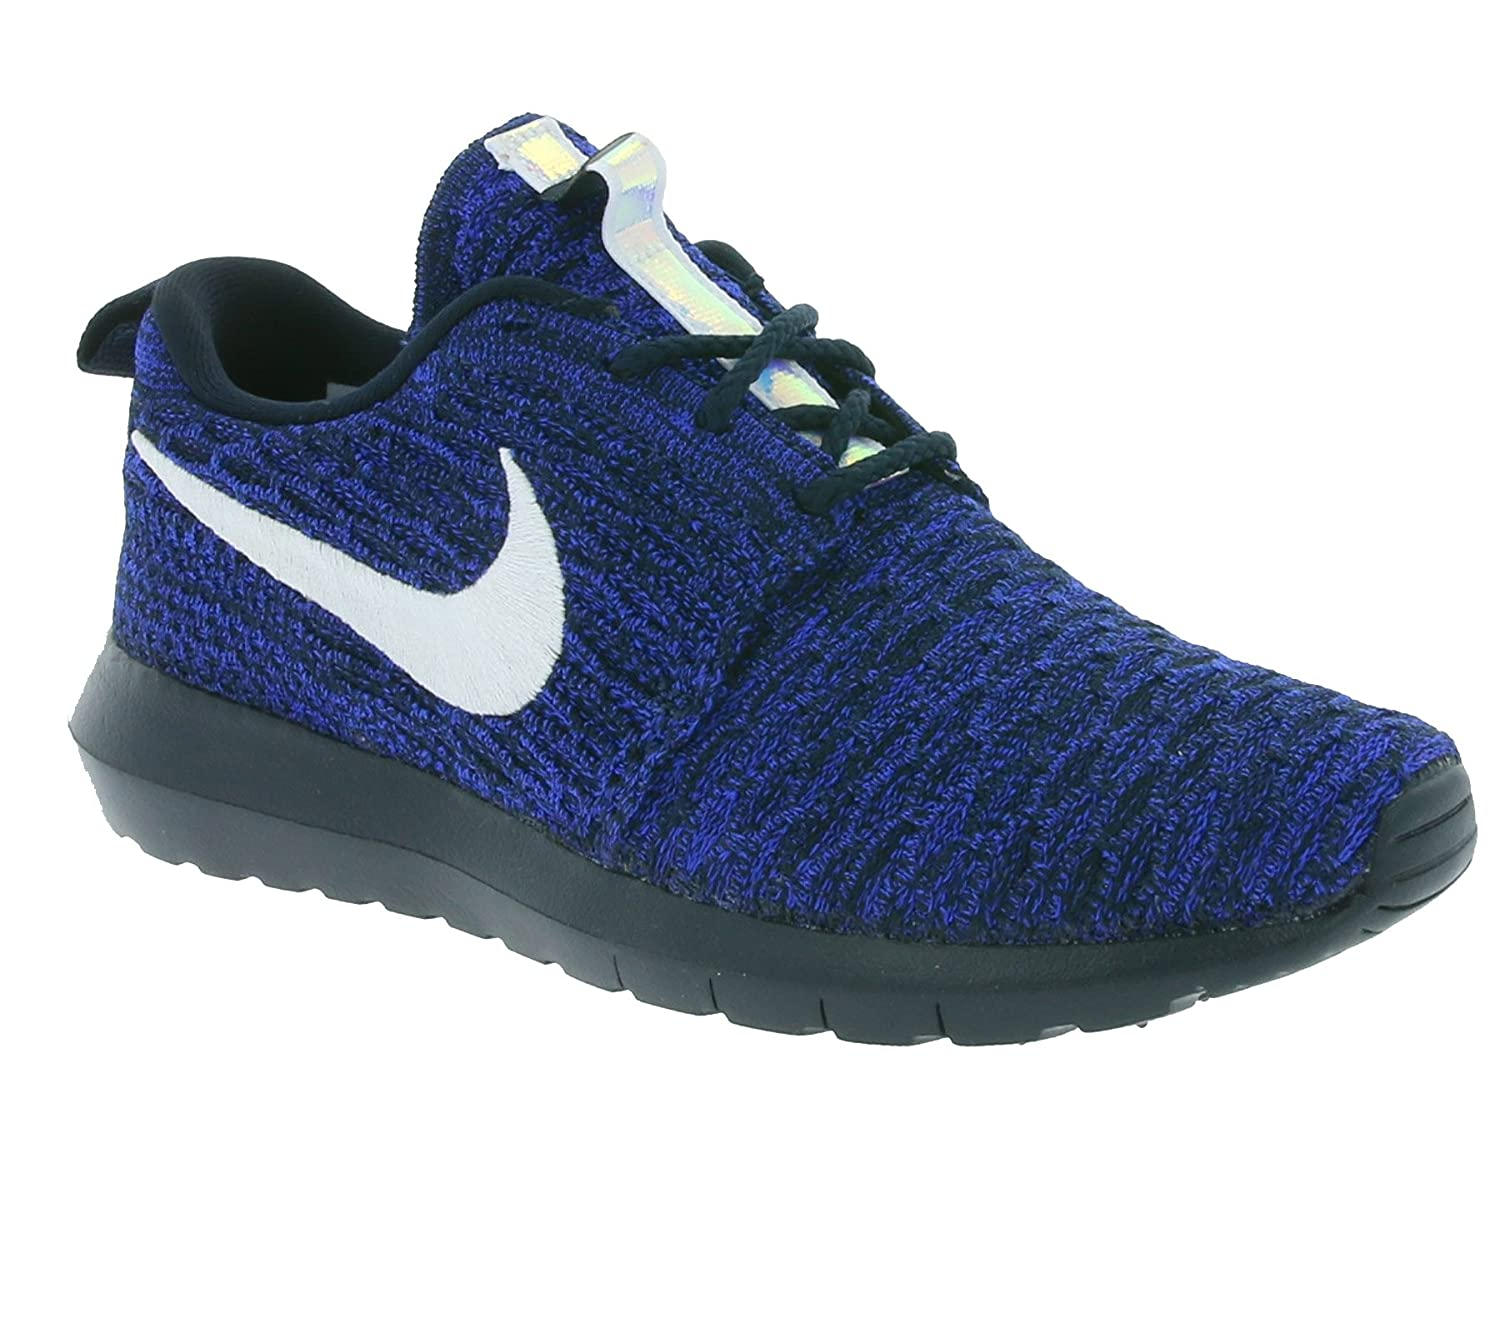 cheap for discount 9c270 18ca8 ... reduced nike womens roshe one flyknit flyknit colorblock running shoes  b01ityg89k 36.5 m eublau 0ee13 93f6c